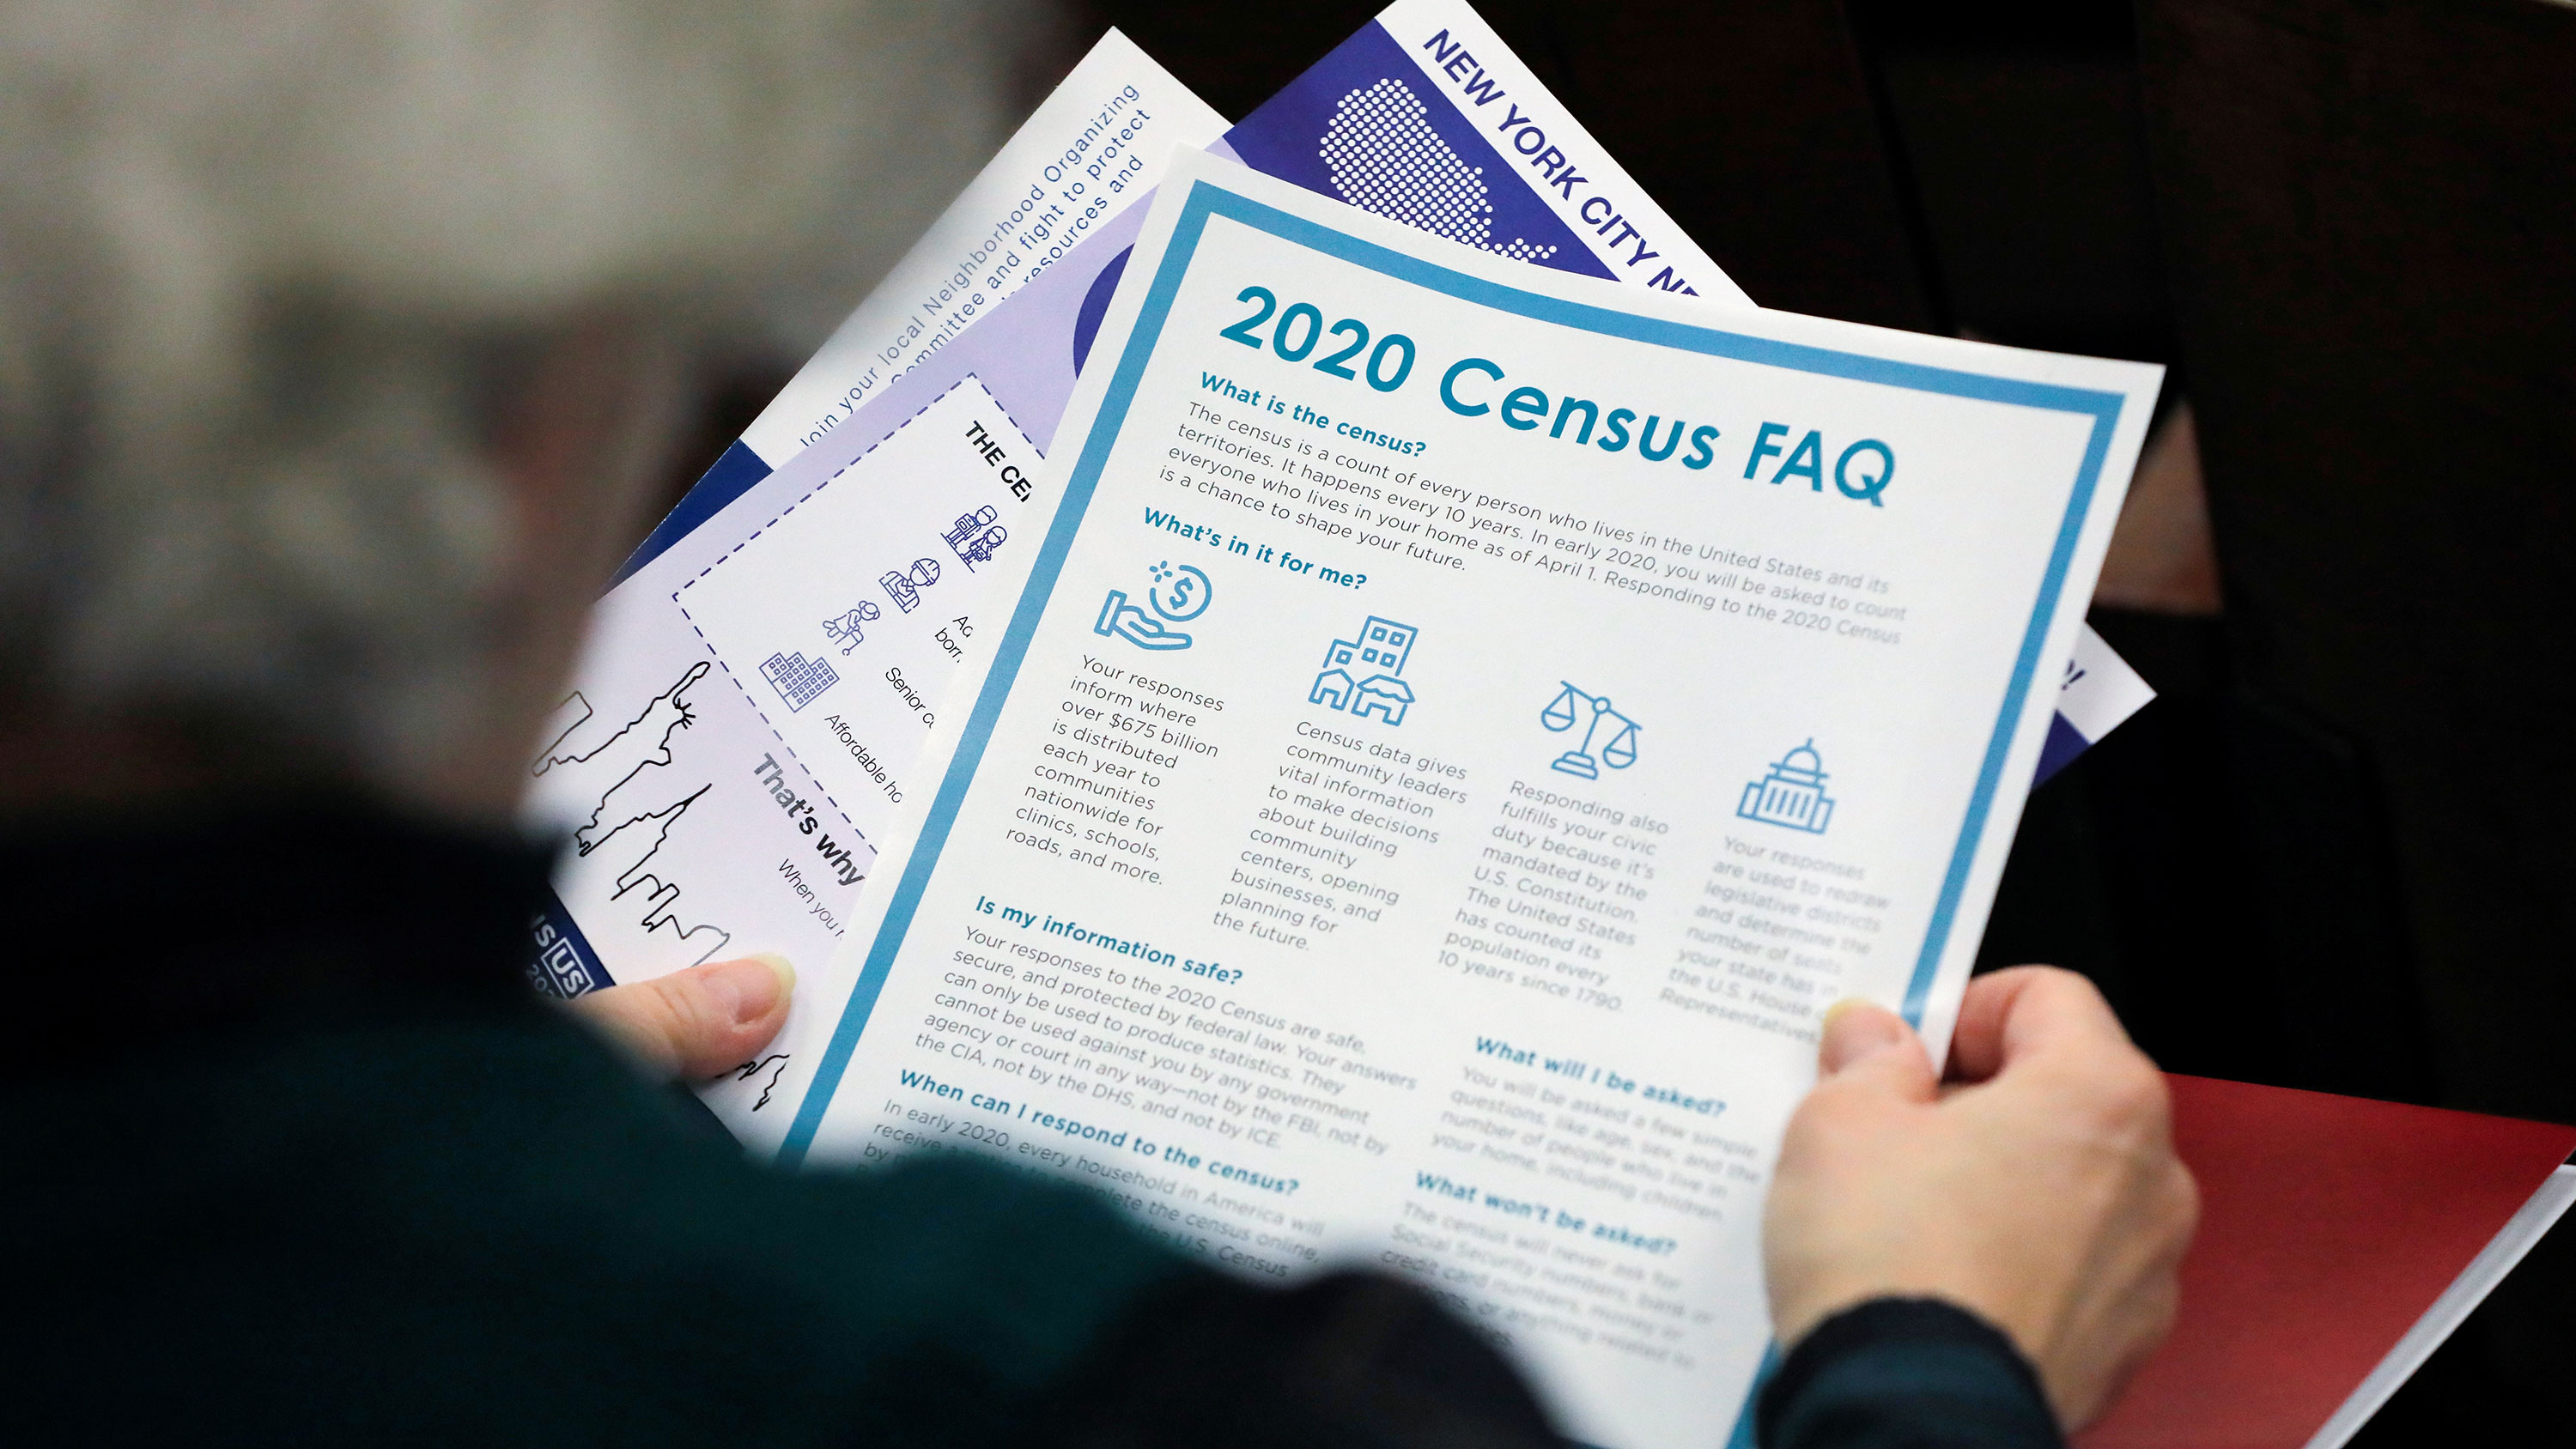 Second court rules against excluding undocumented immigrants from census count